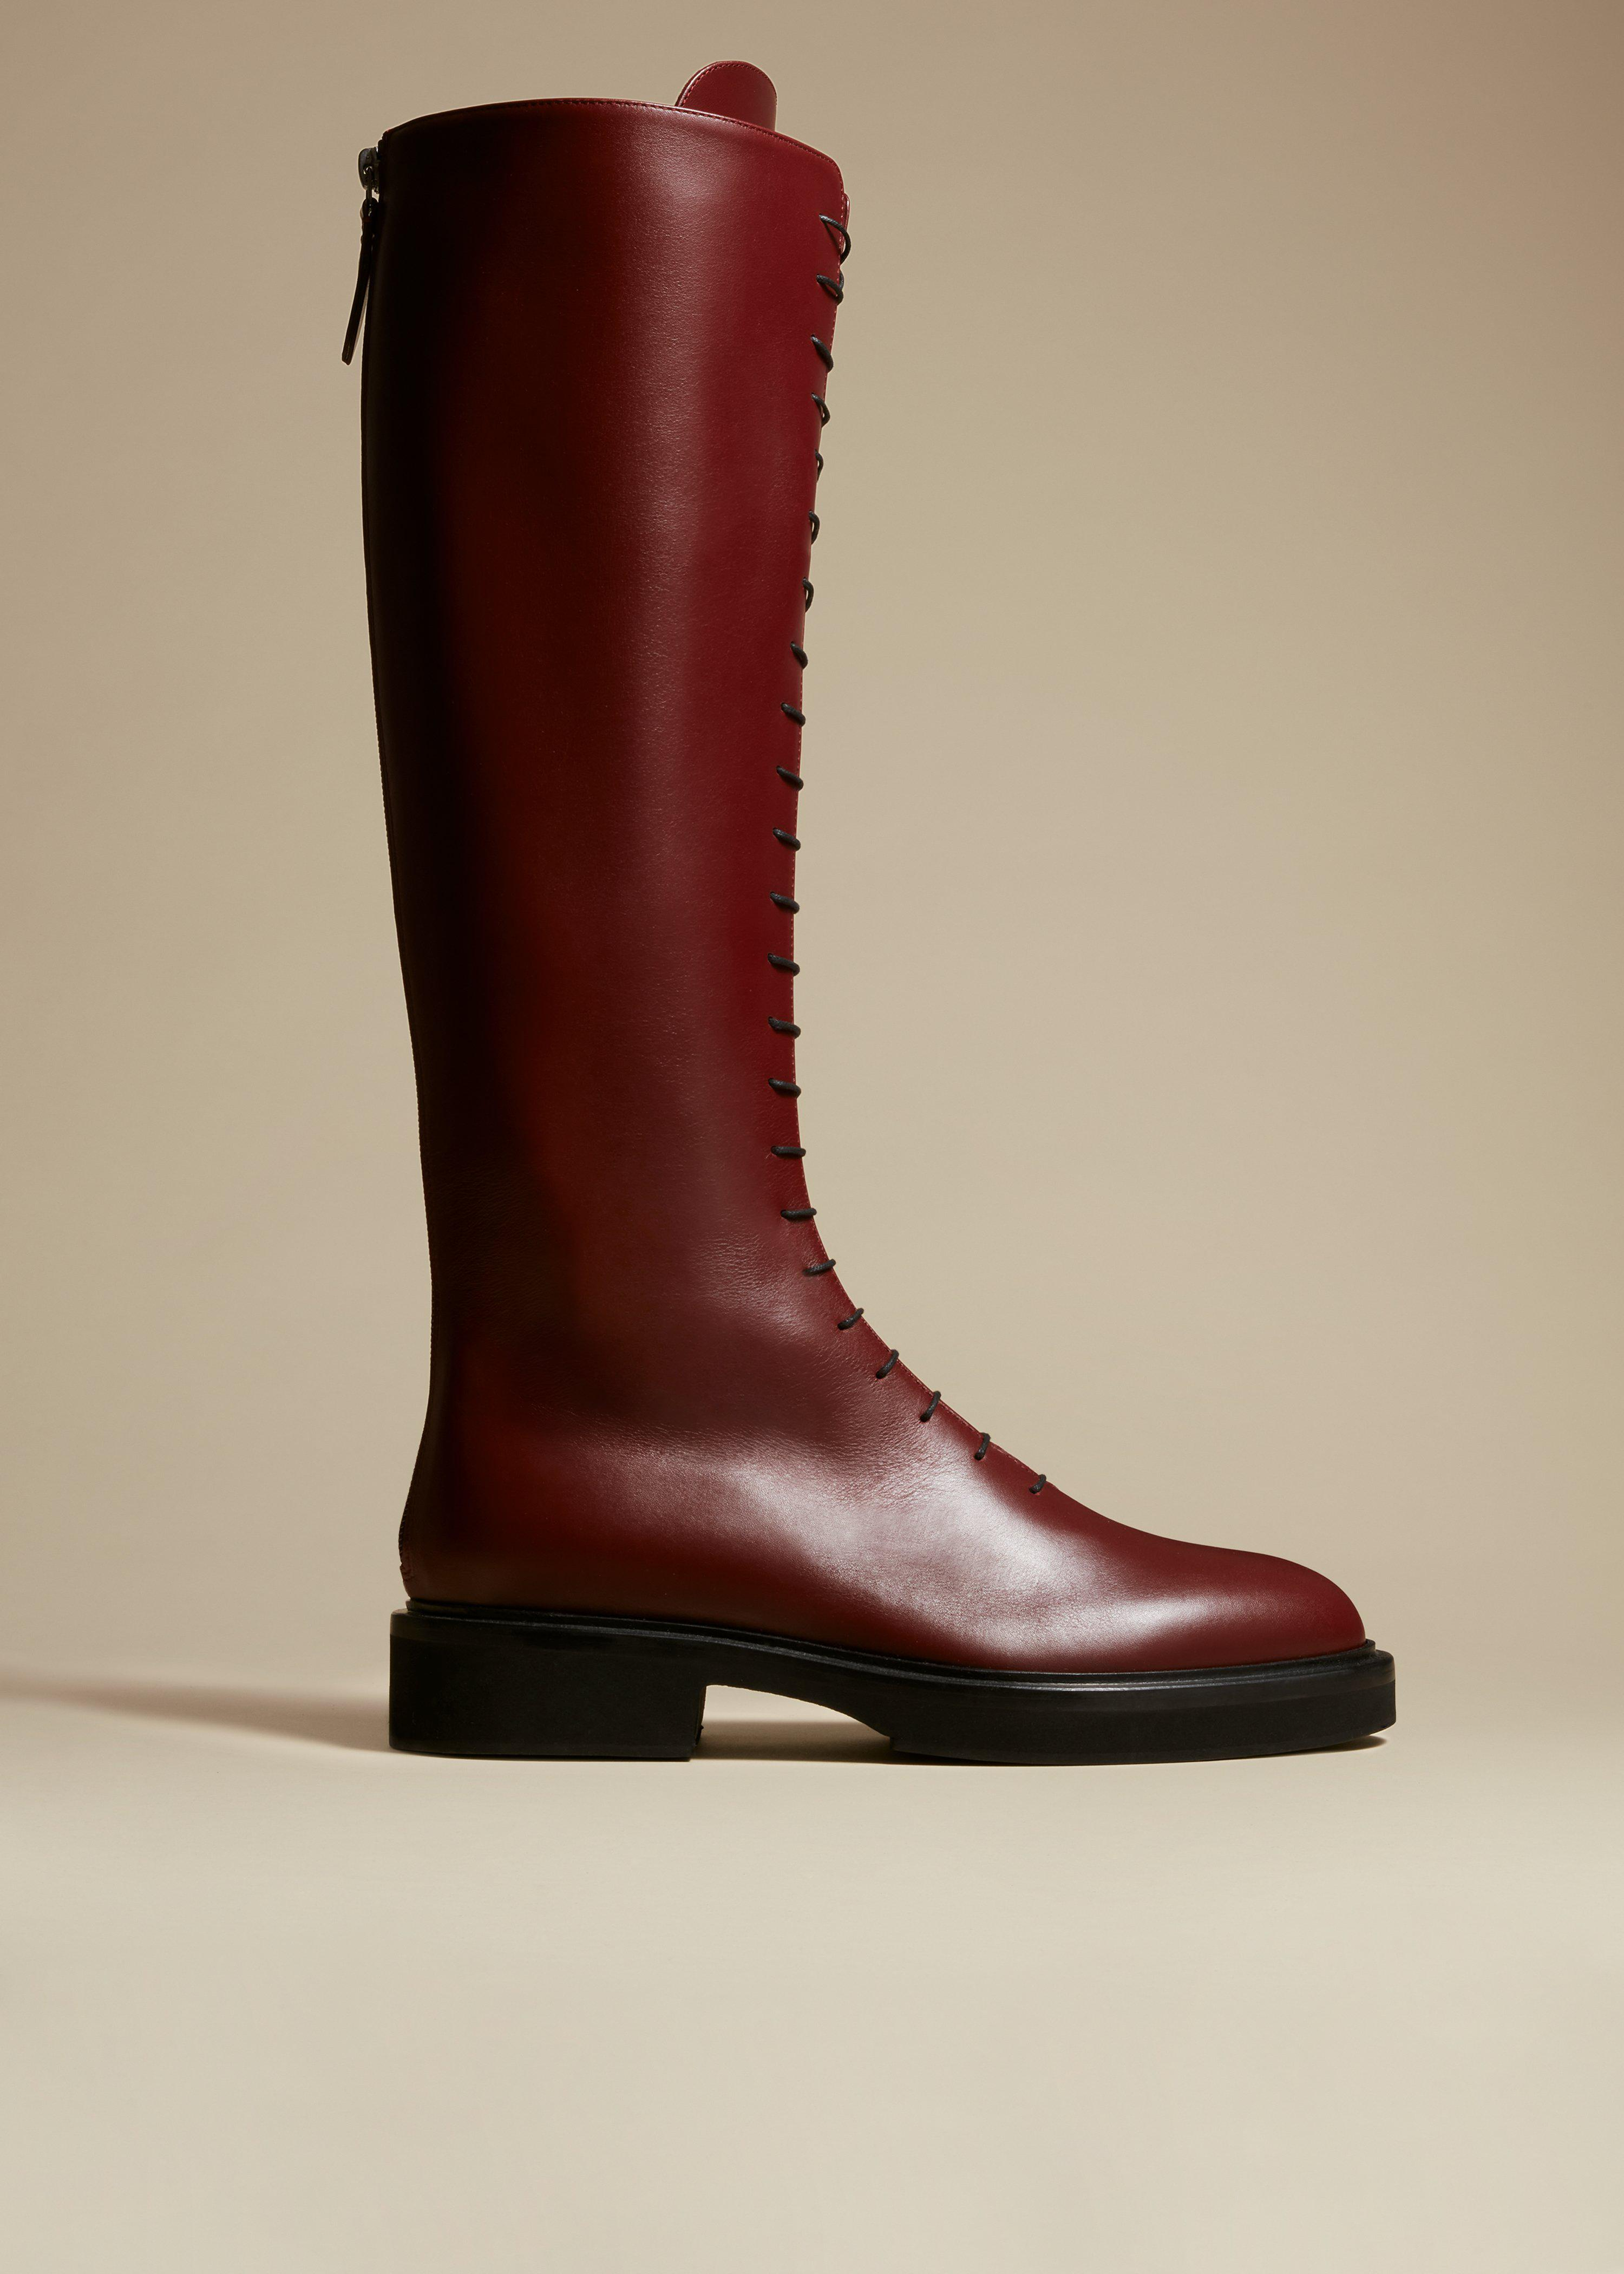 The York Boot in Bordeaux Leather